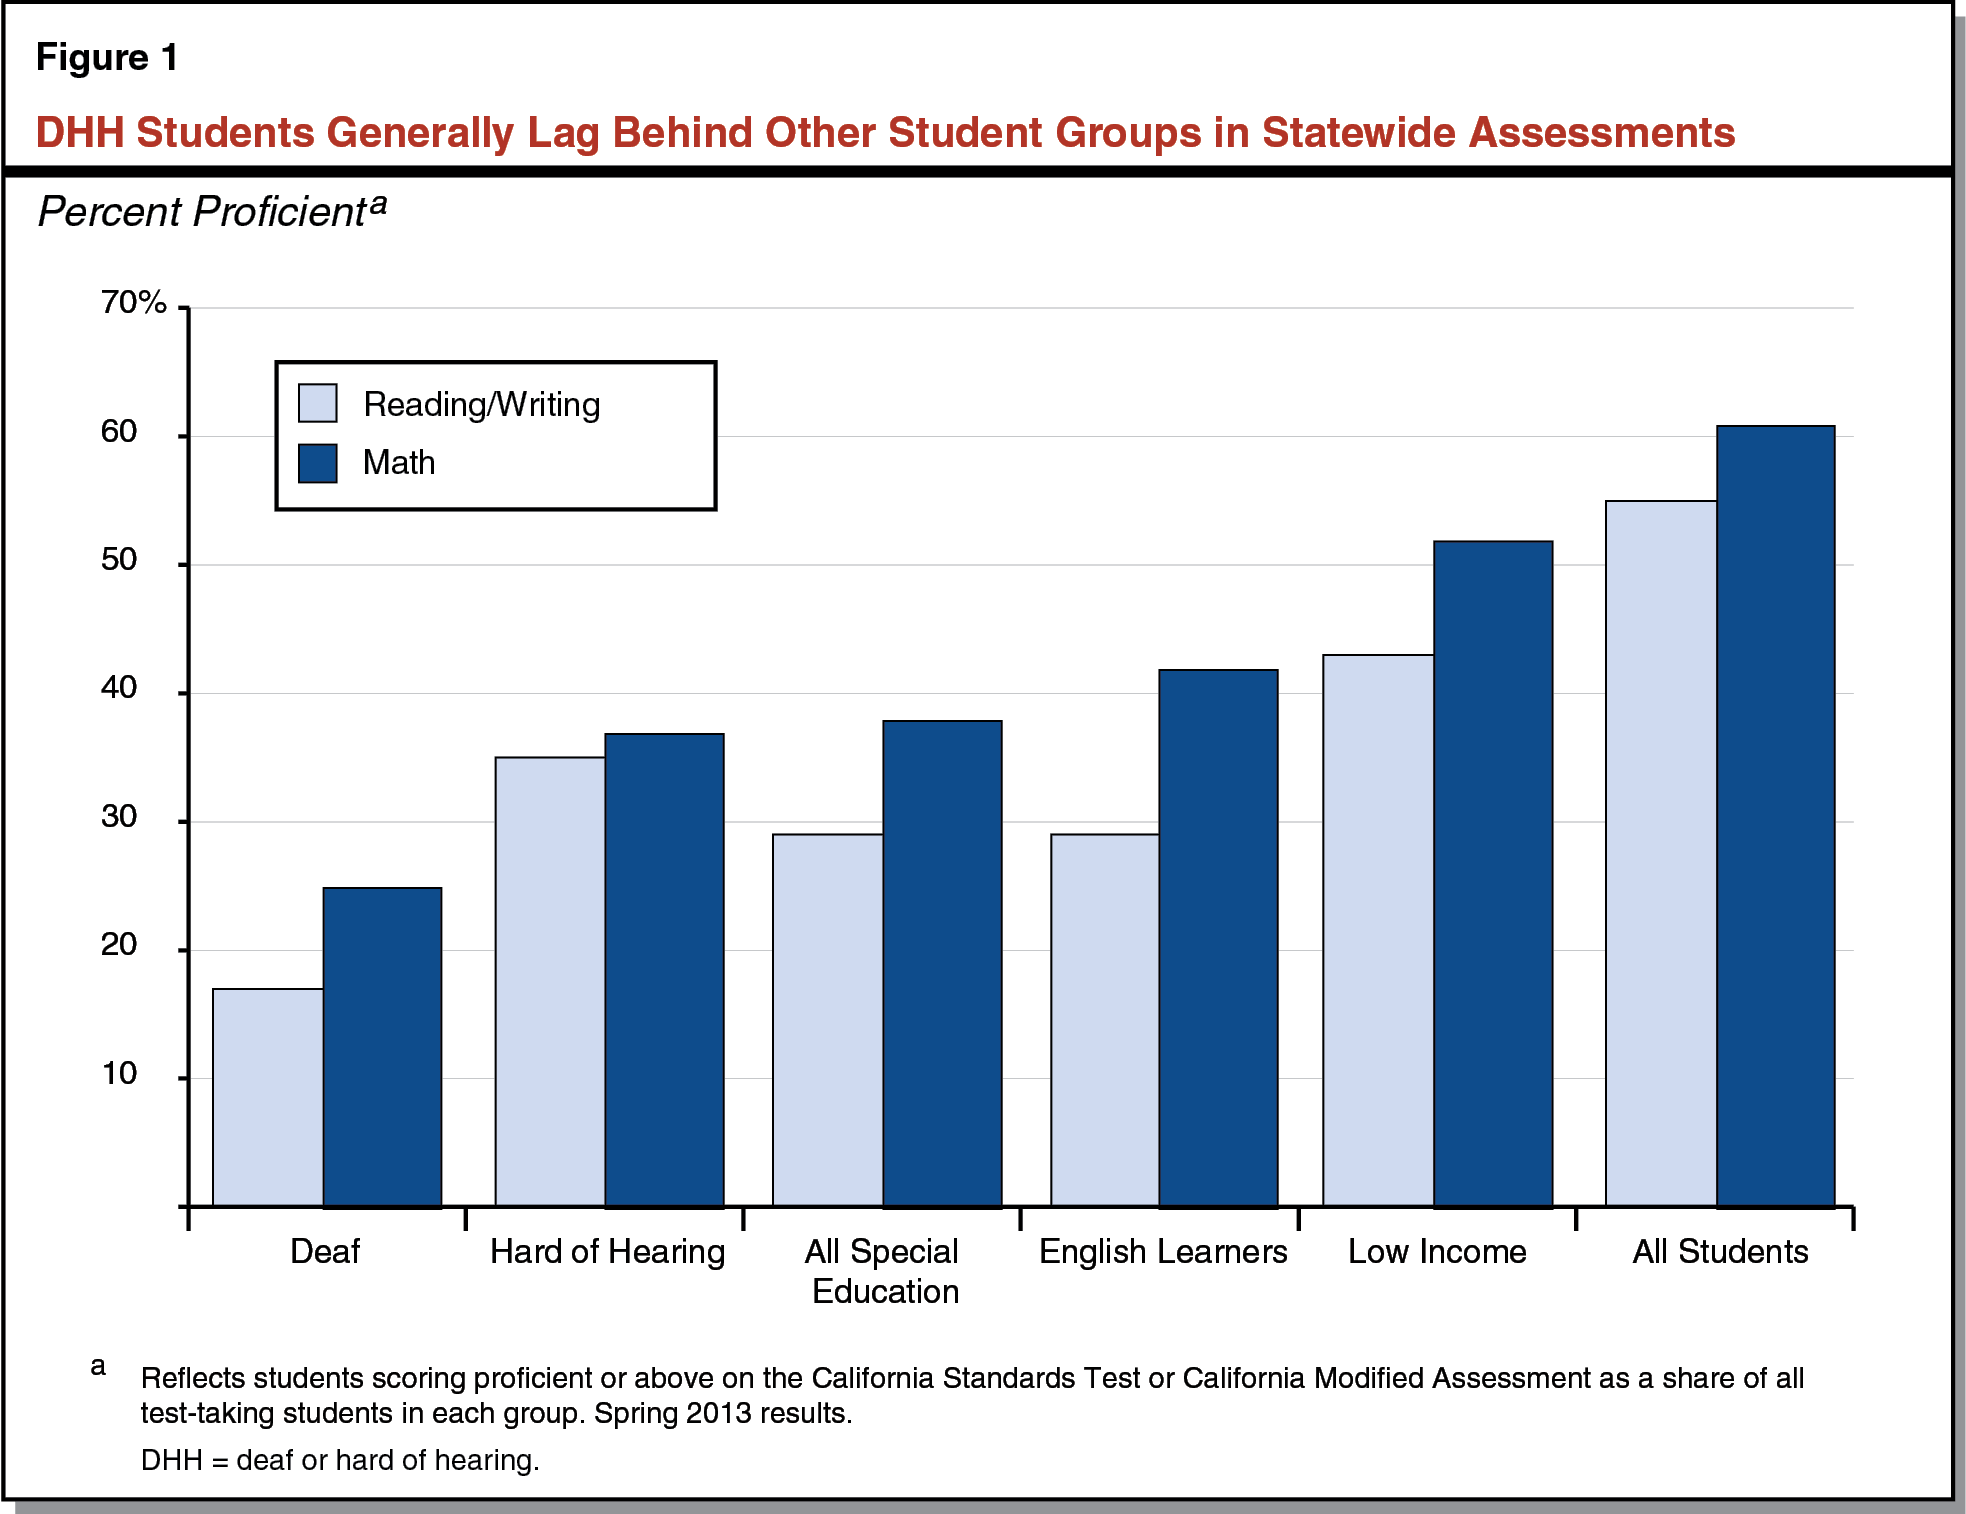 DHH students generally lag behind others in statewide assessments - graph